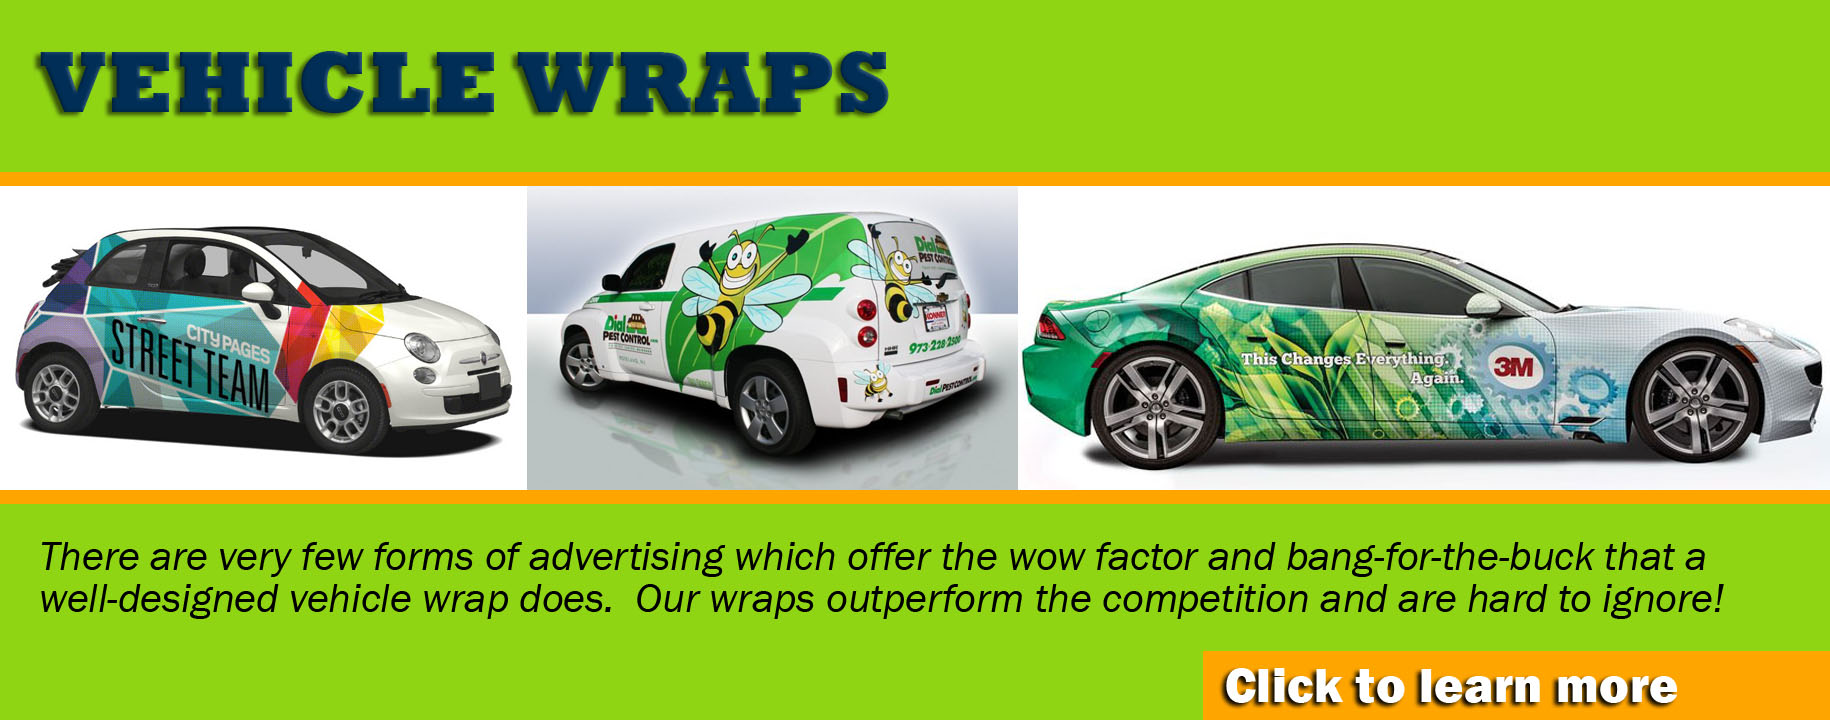 Our vehicle wraps are top quality and hard to ignore